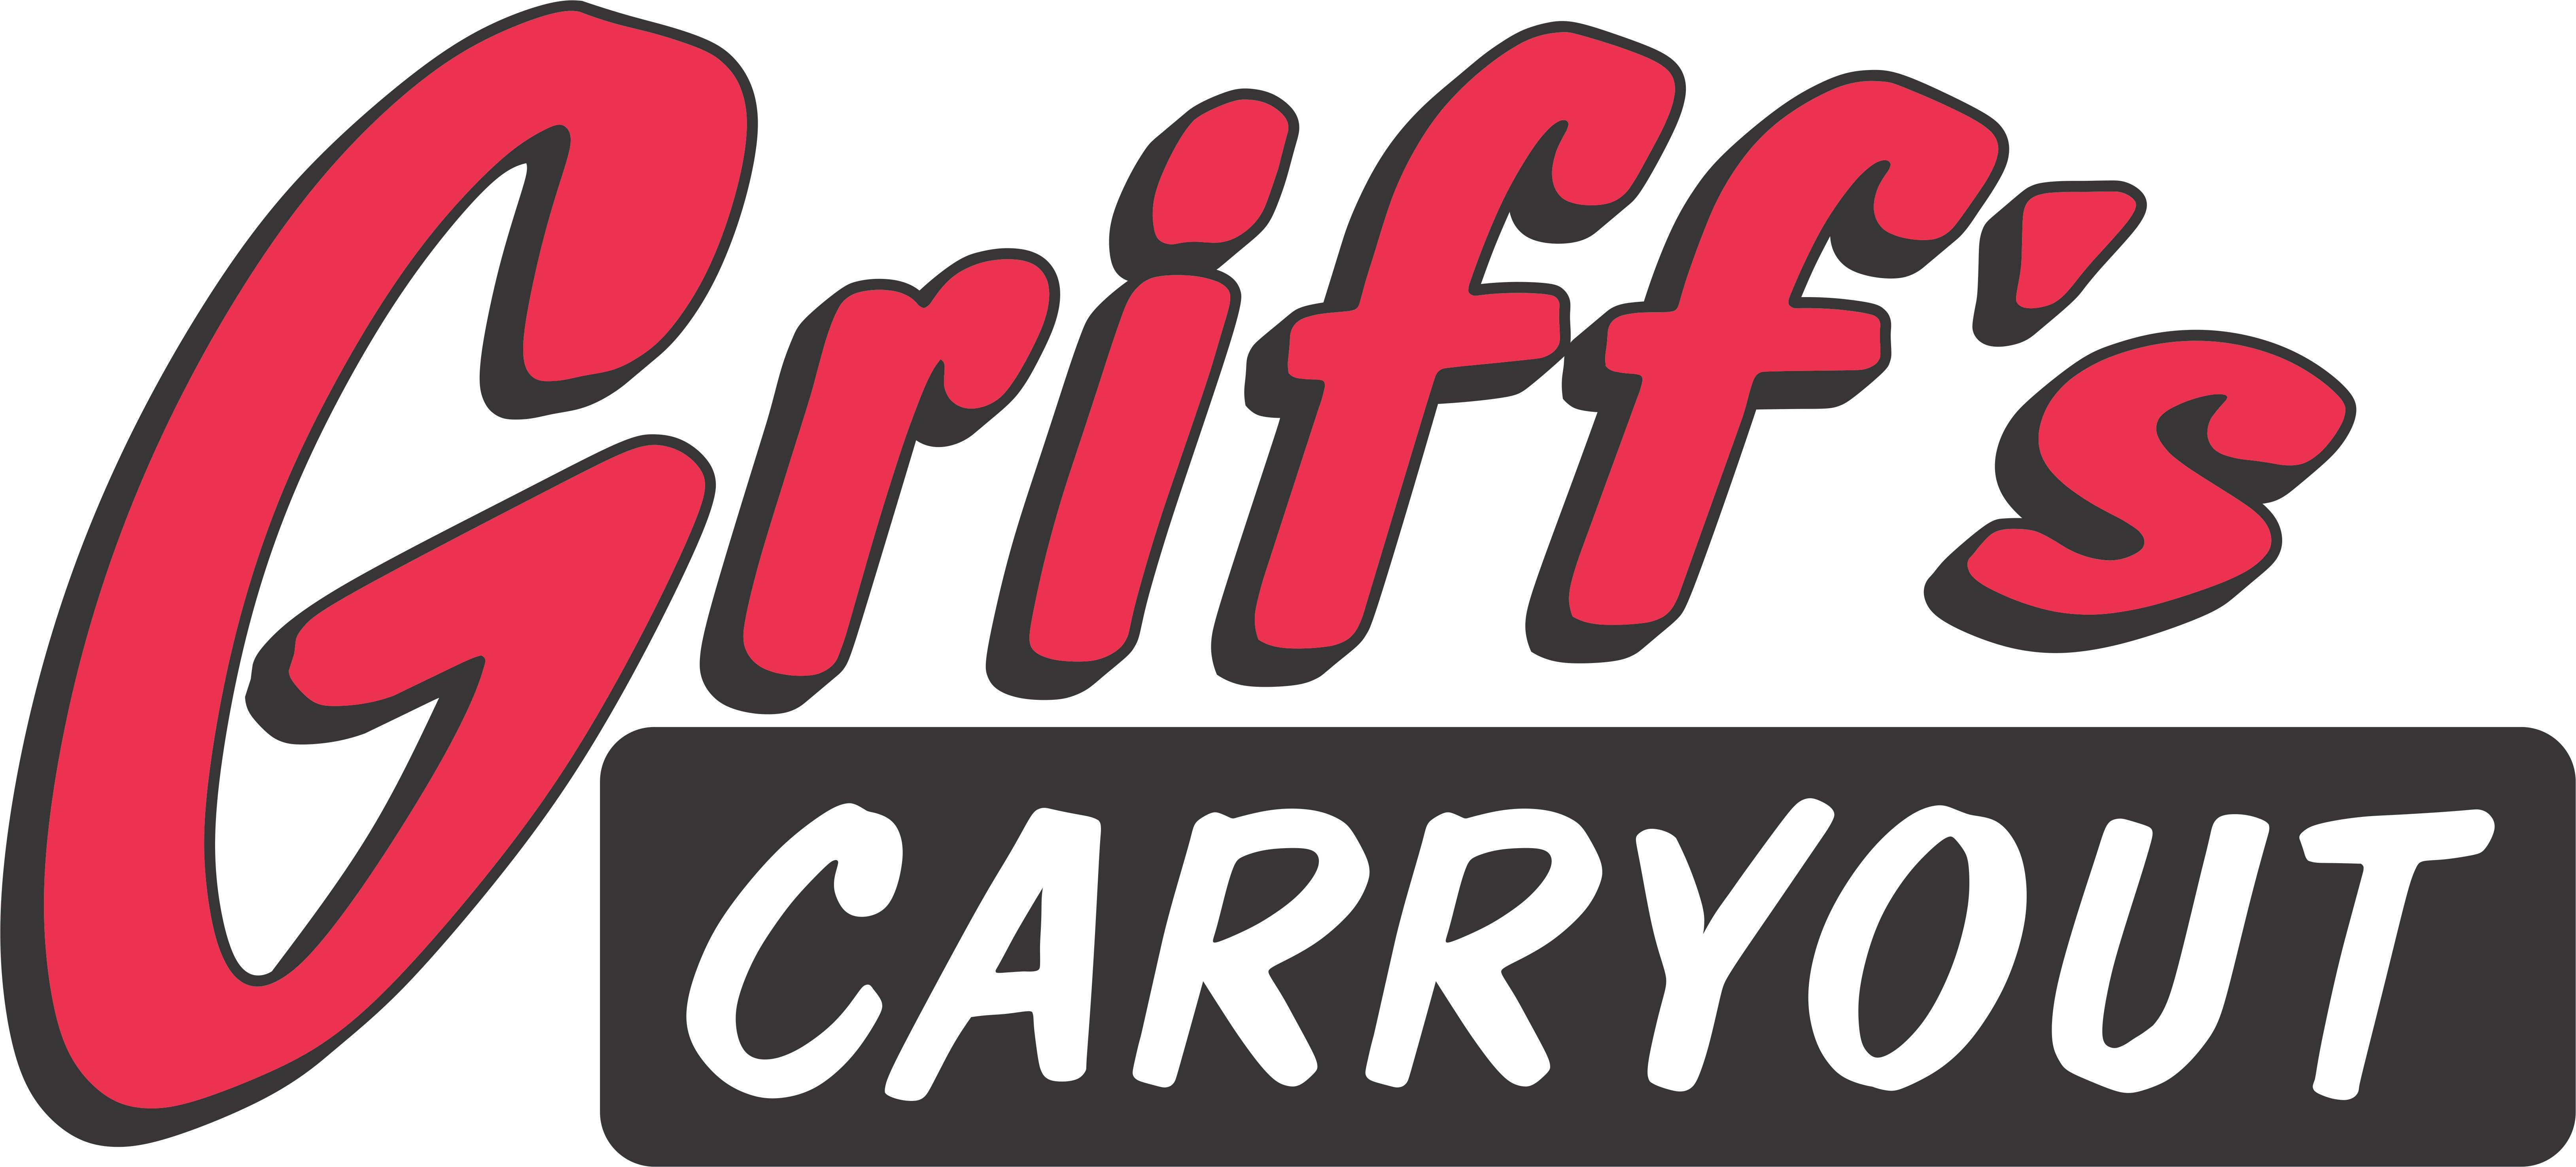 Griff's Carryout logo